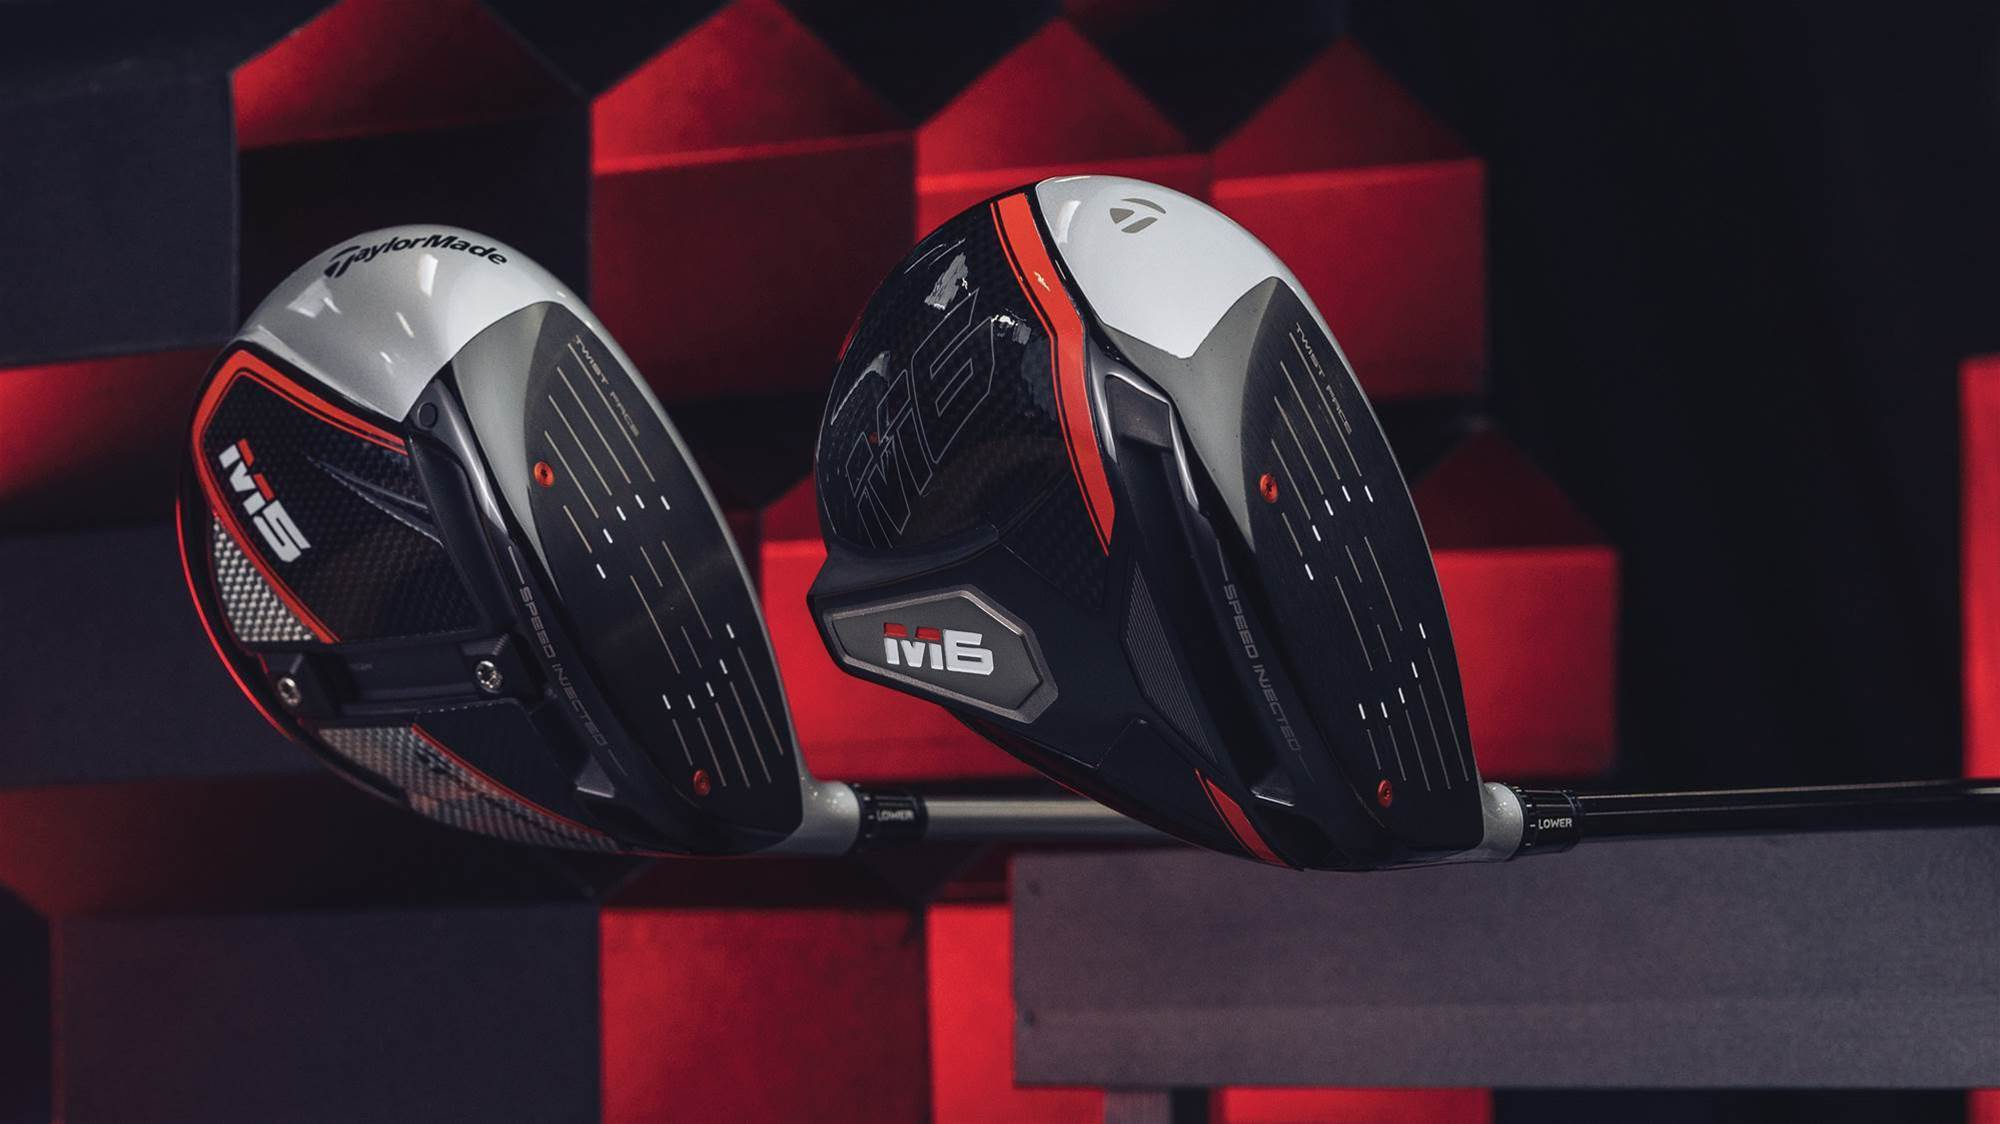 TaylorMade launch M5/M6 woods and updated golf balls